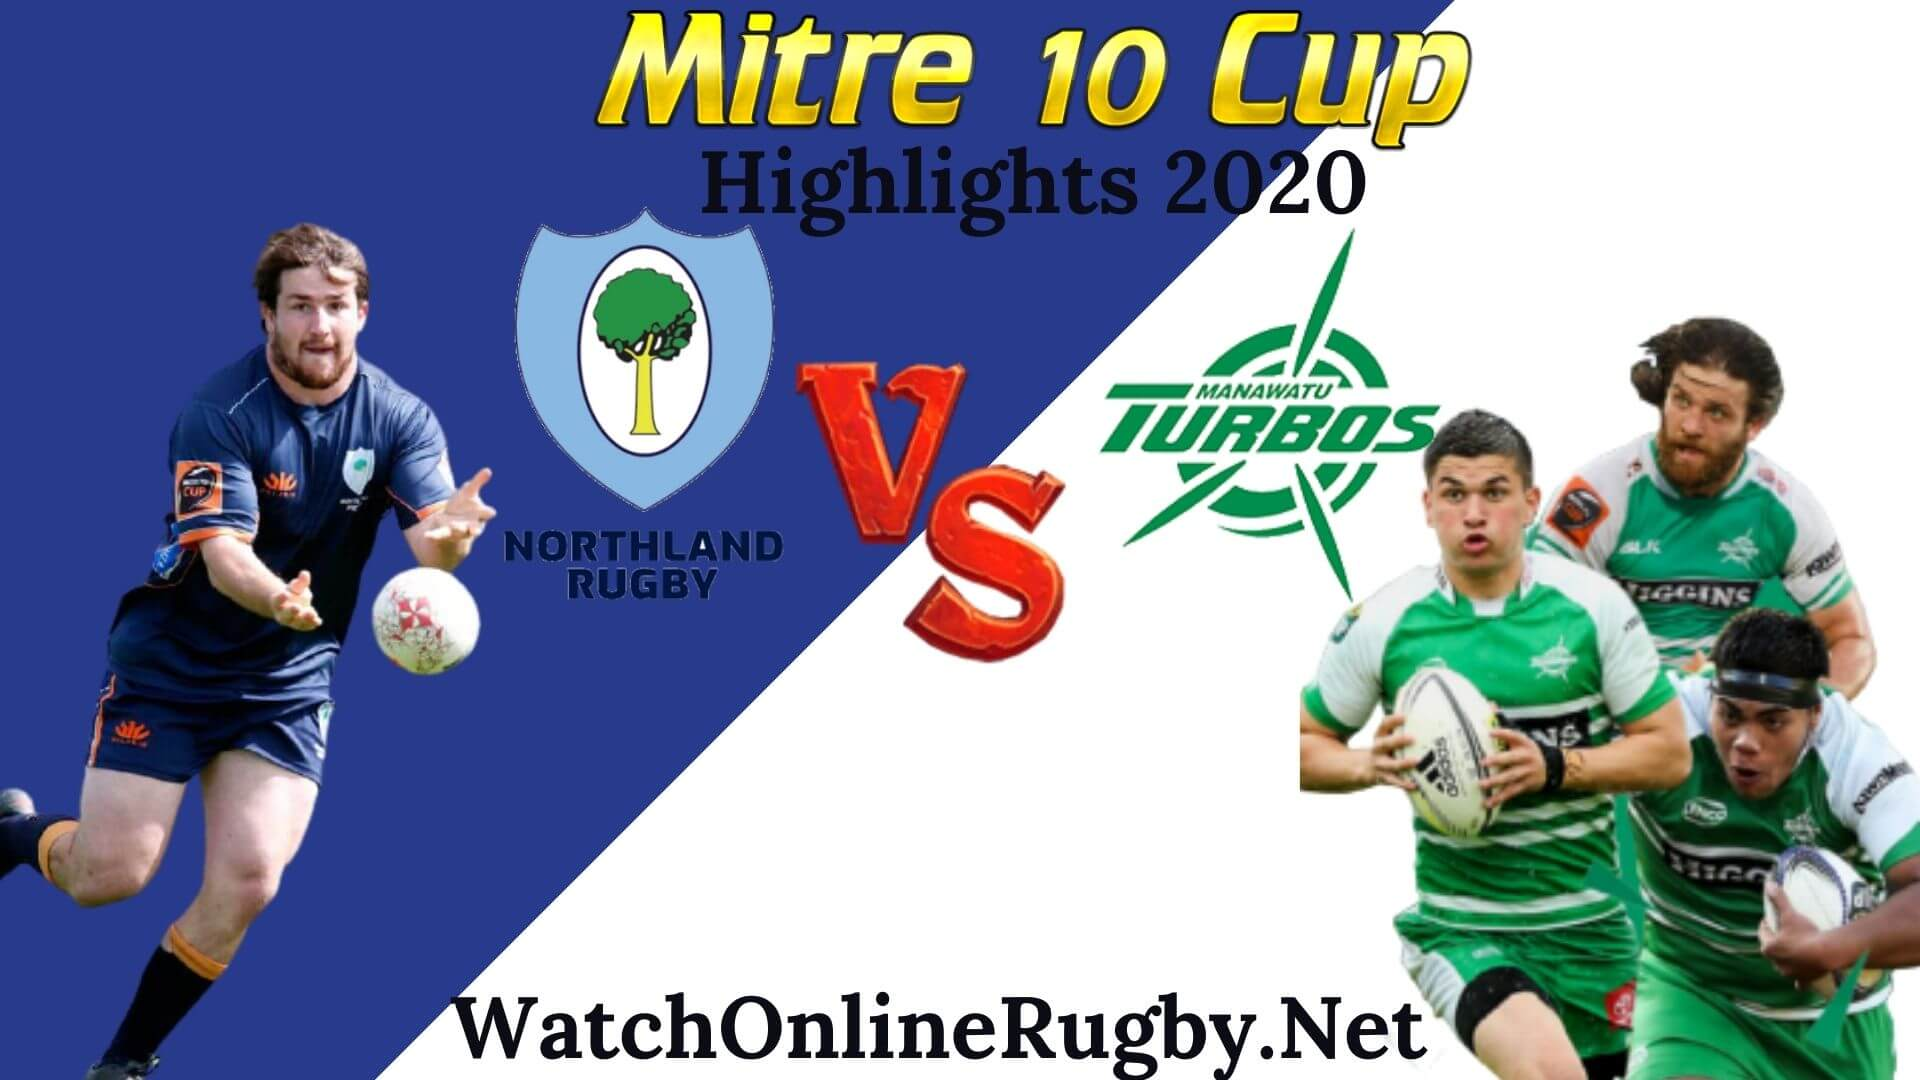 Northland vs Manawatu RD 1 Highlights 2020 M10 Cup